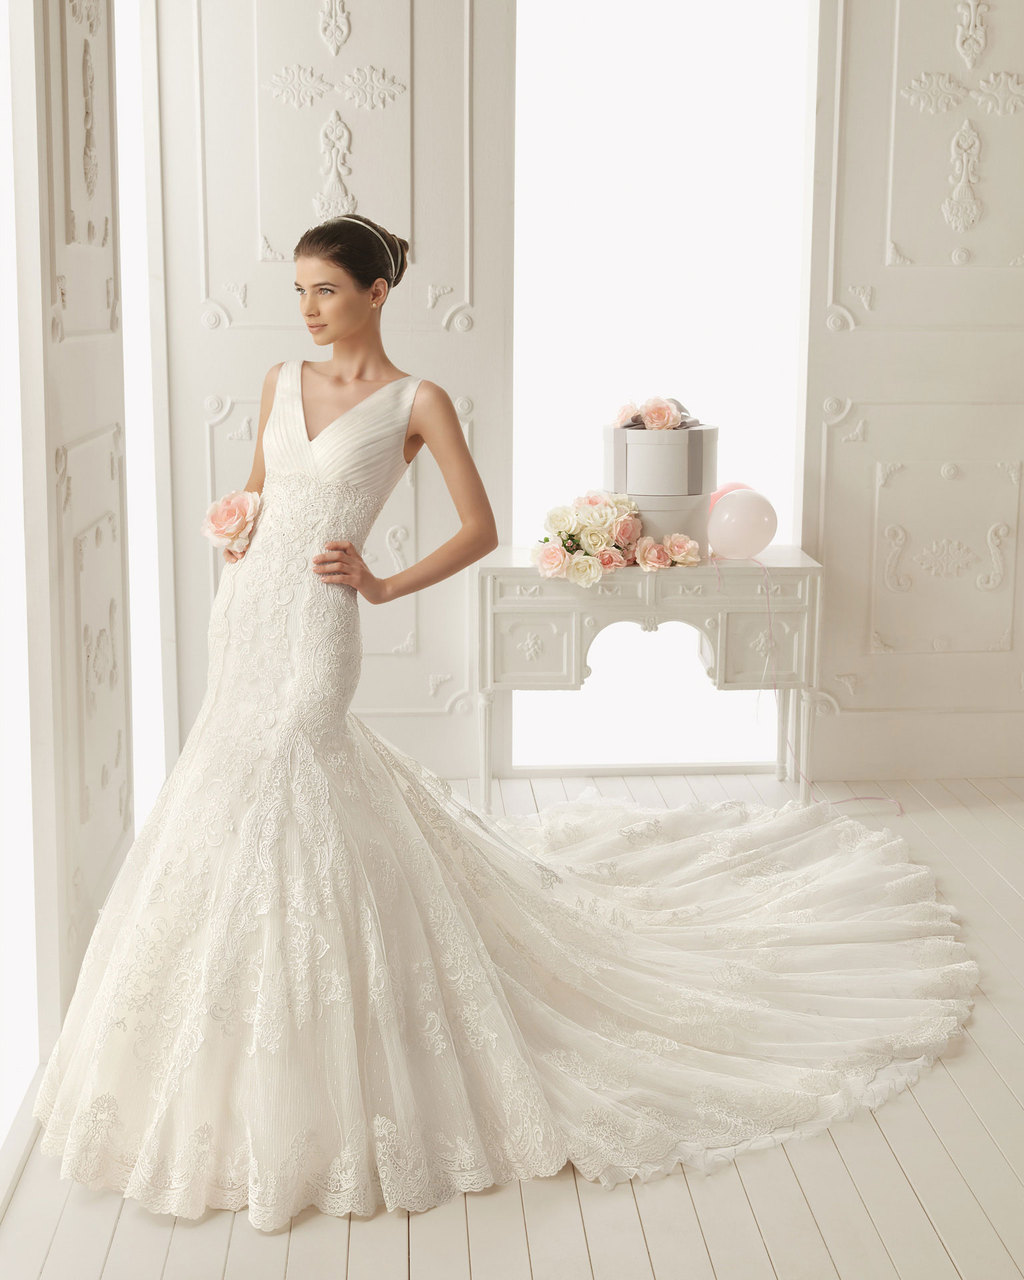 2013-wedding-dress-aire-barcelona-bridal-gowns-radiante.full